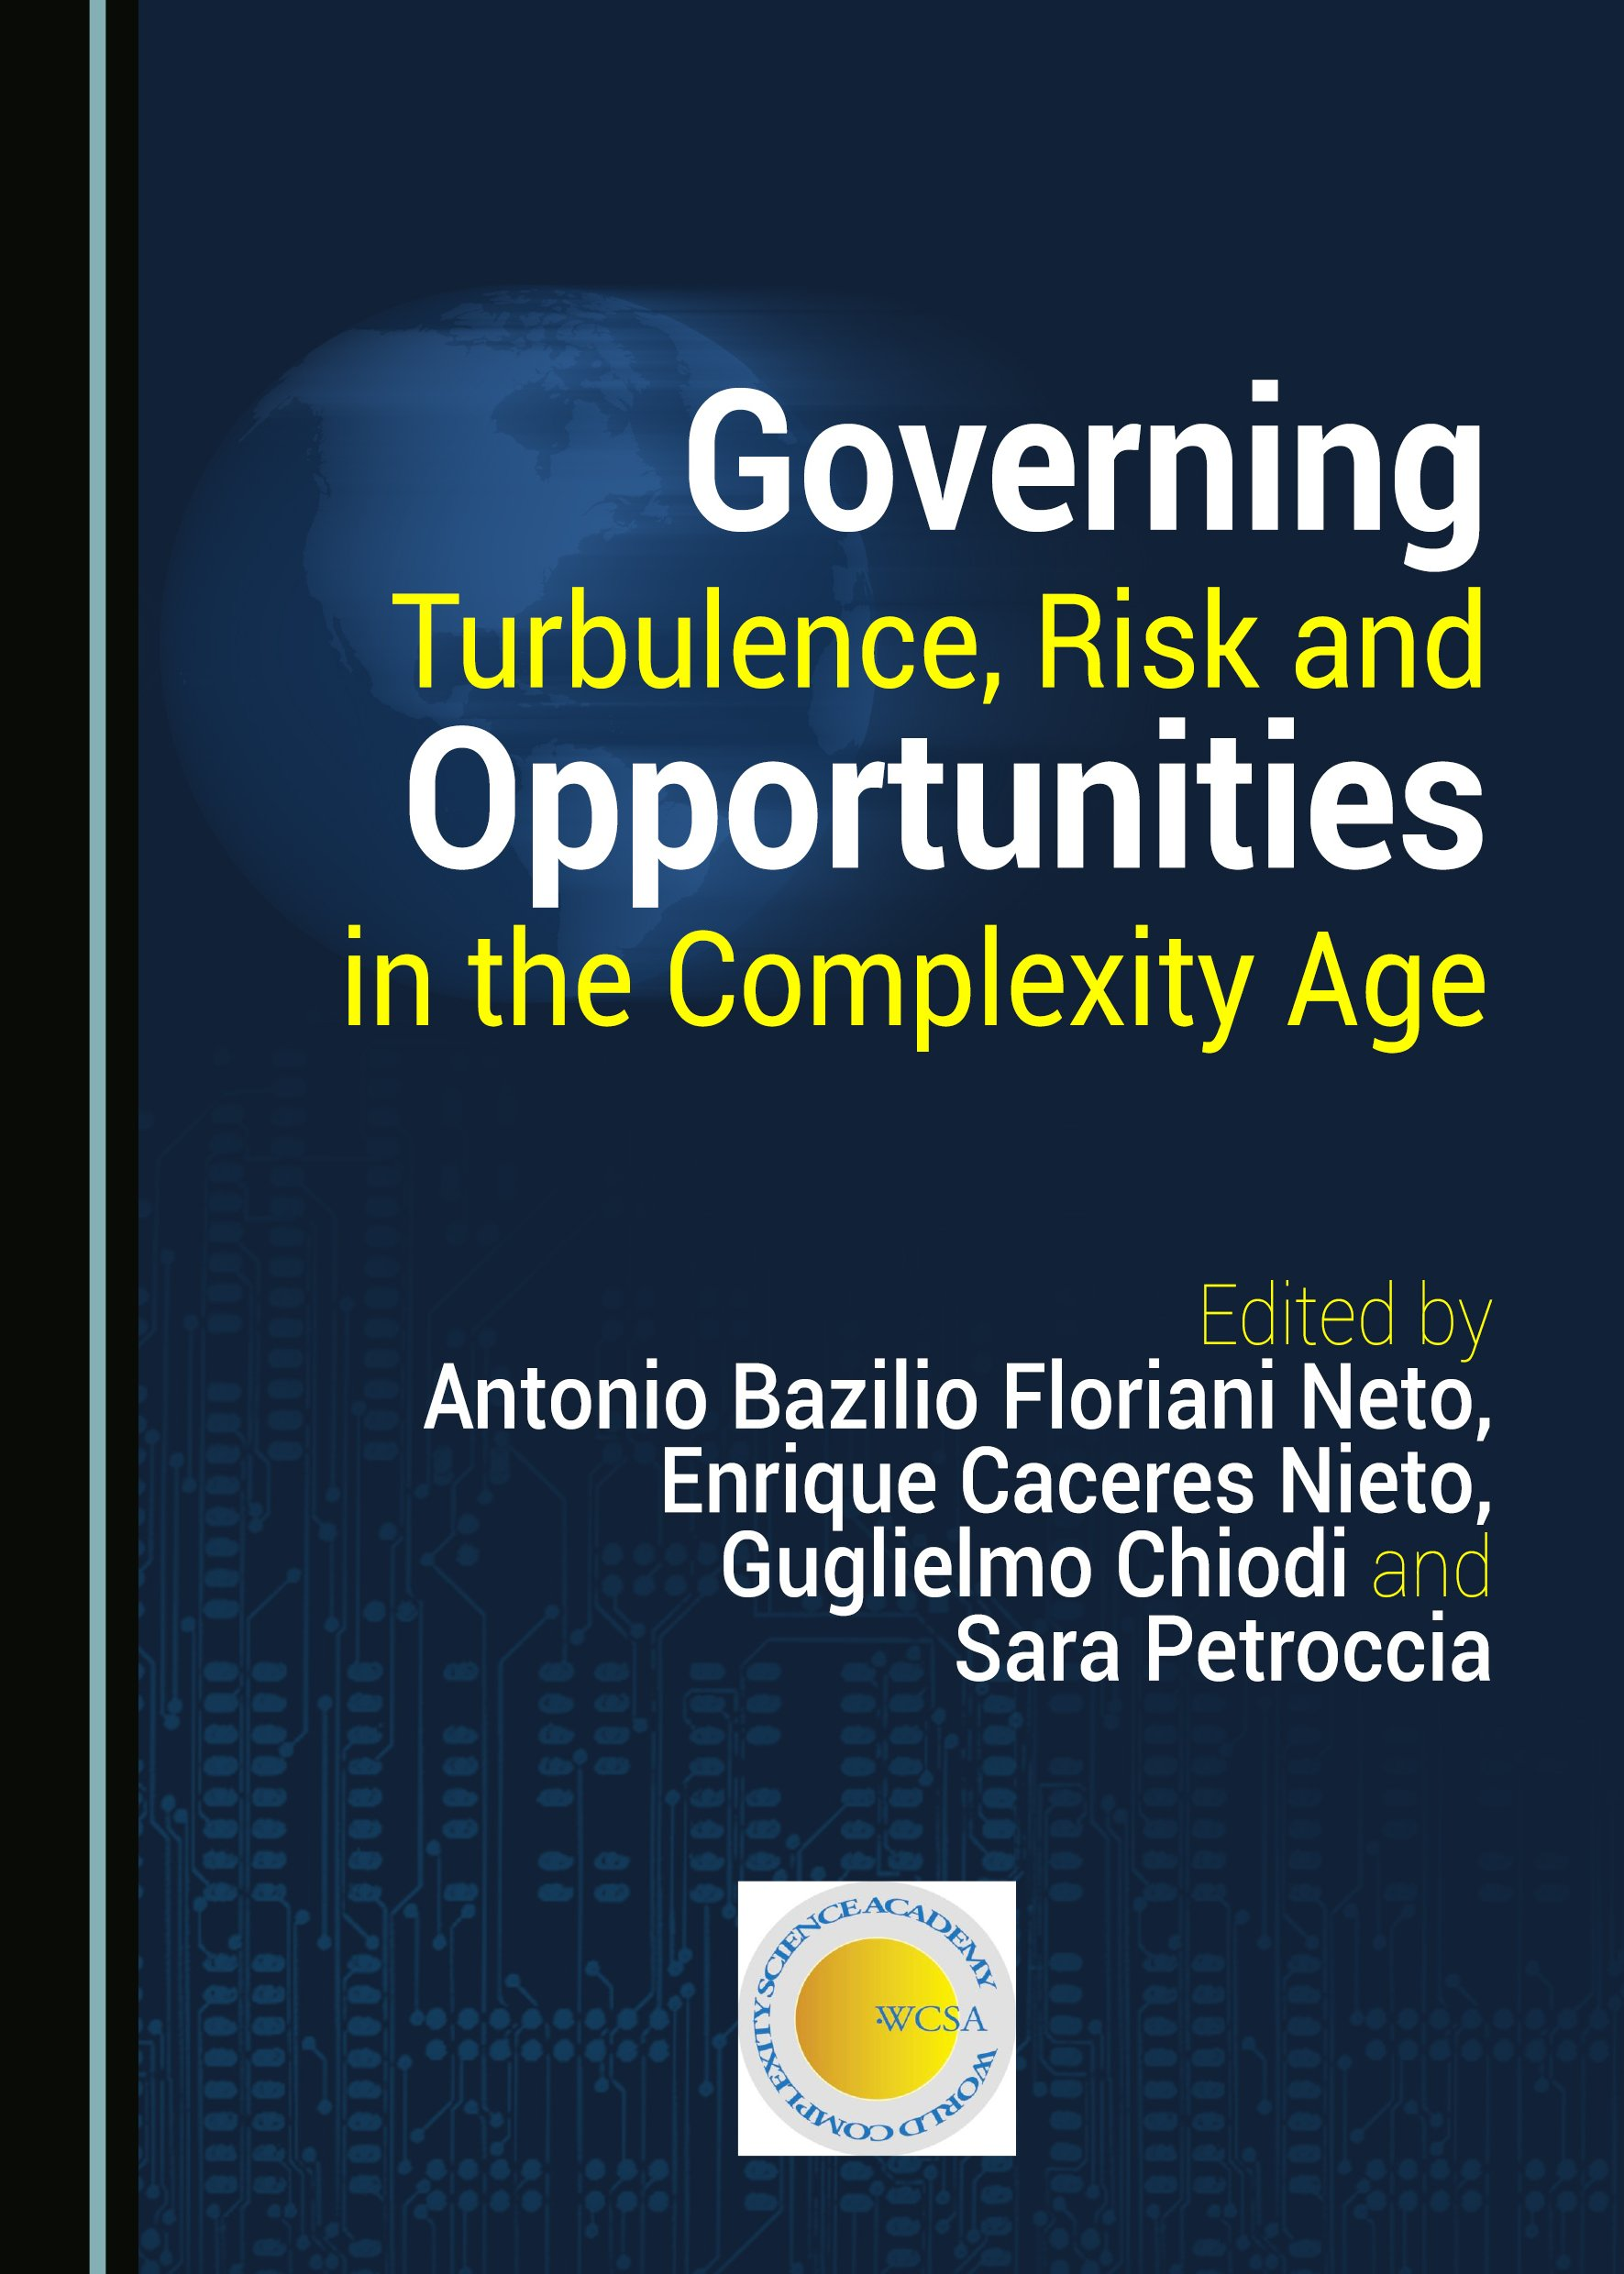 Governing Turbulence, Risk and Opportunities in the Complexity Age